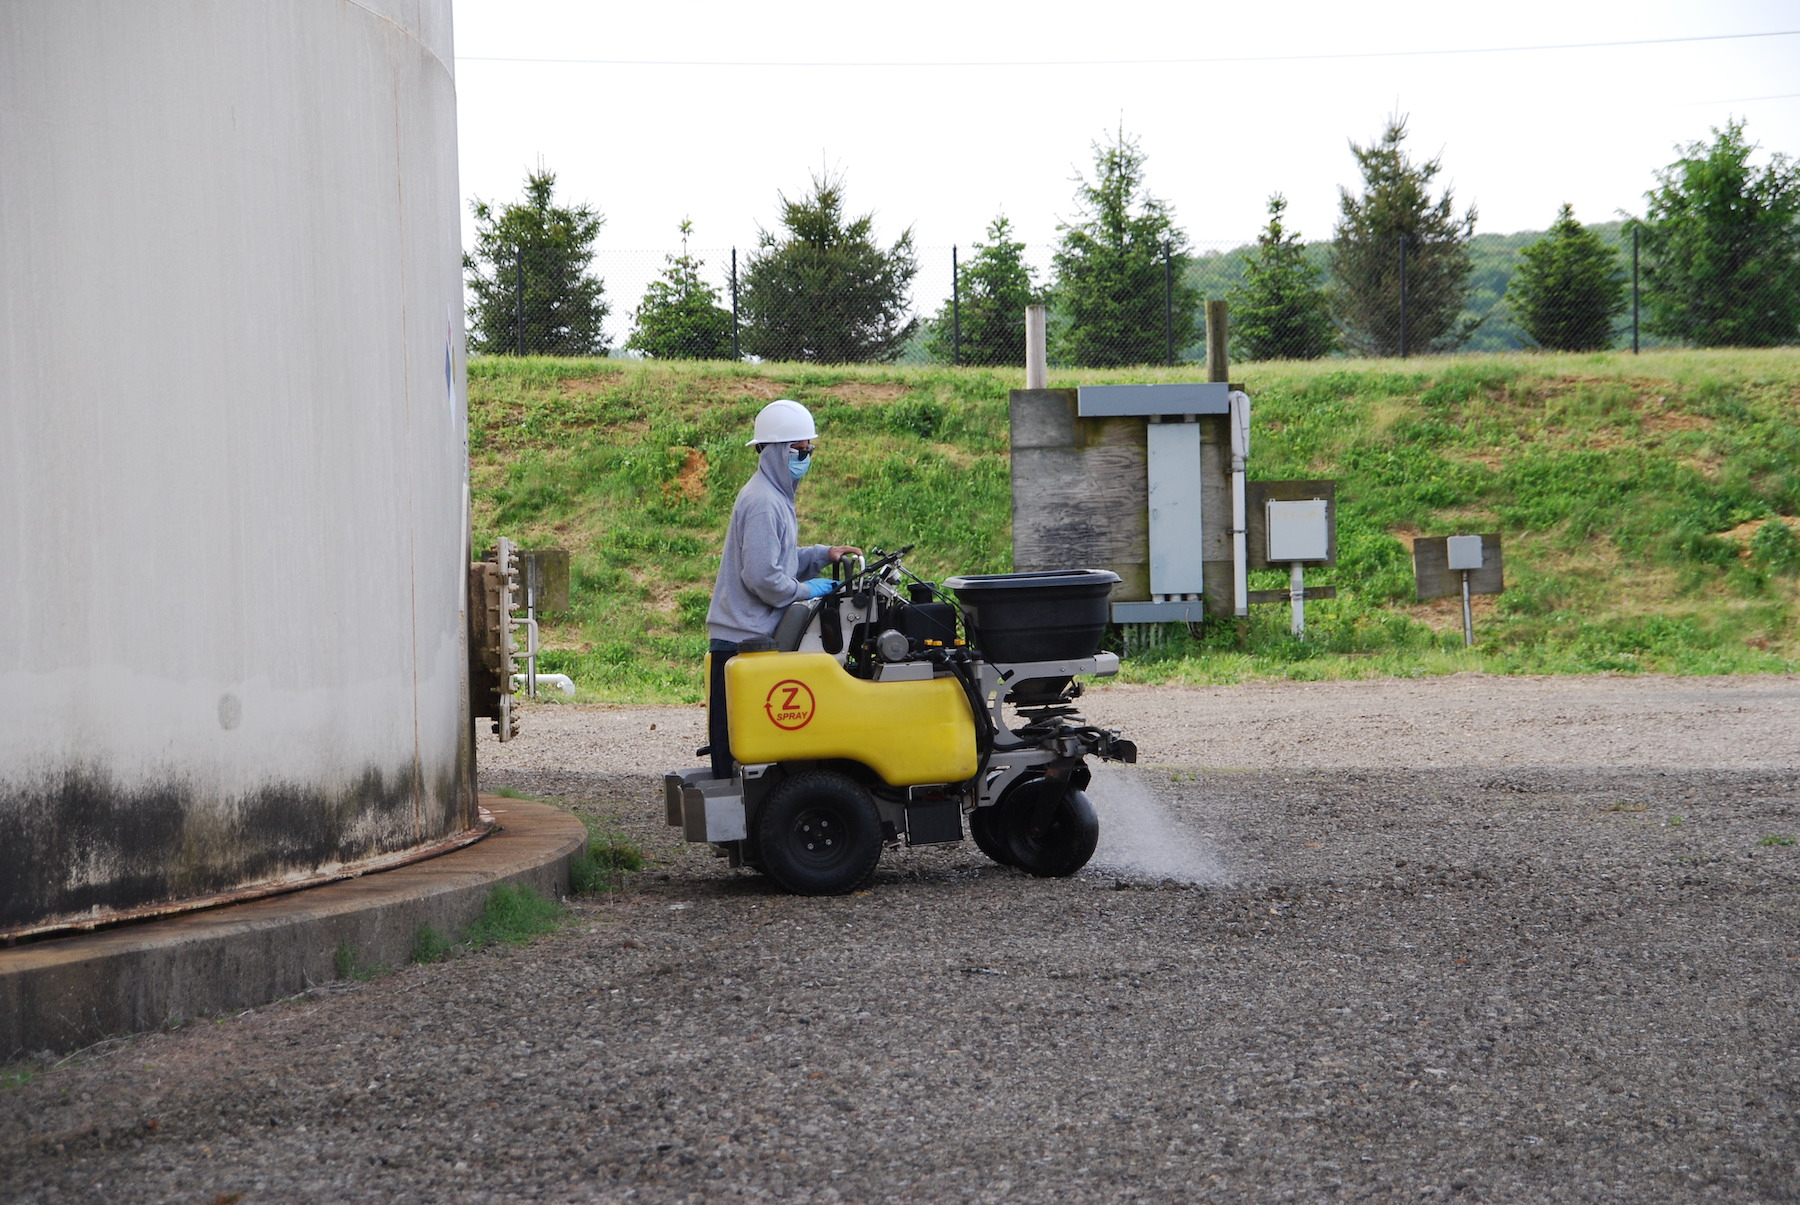 vegetation management product being applied to commercial property